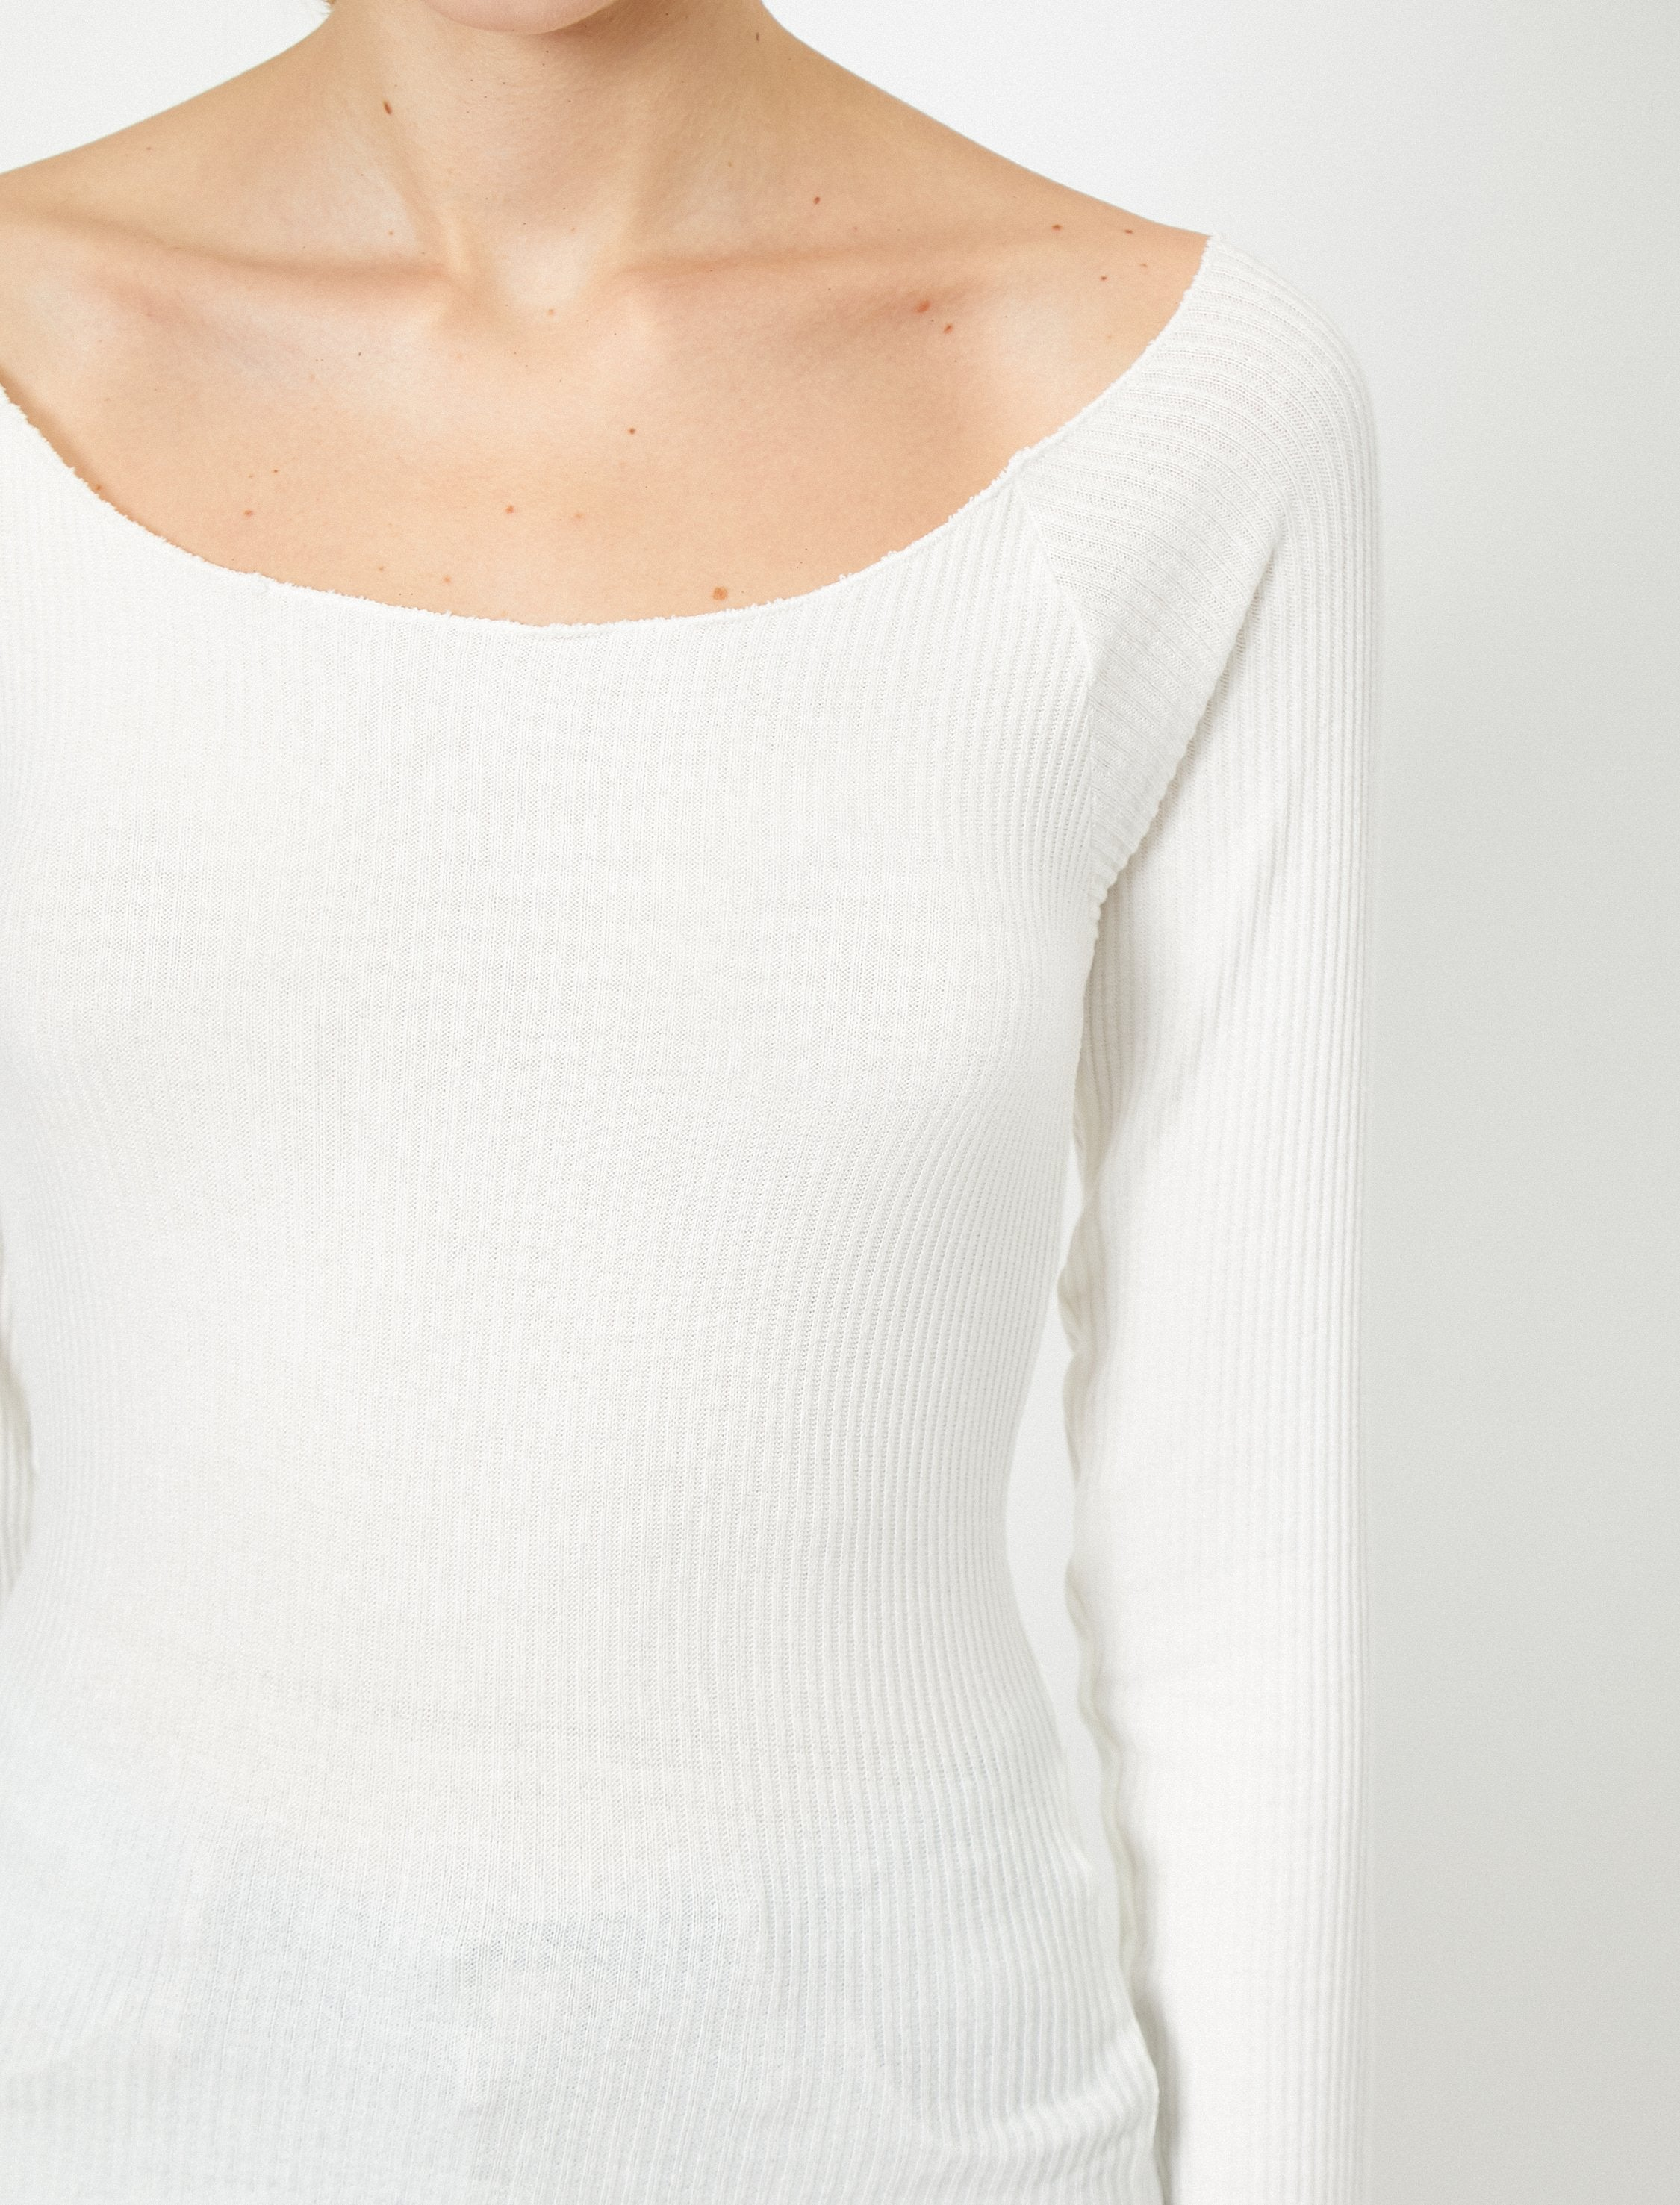 Long Sleeve Scoop Neck Tshirt in White